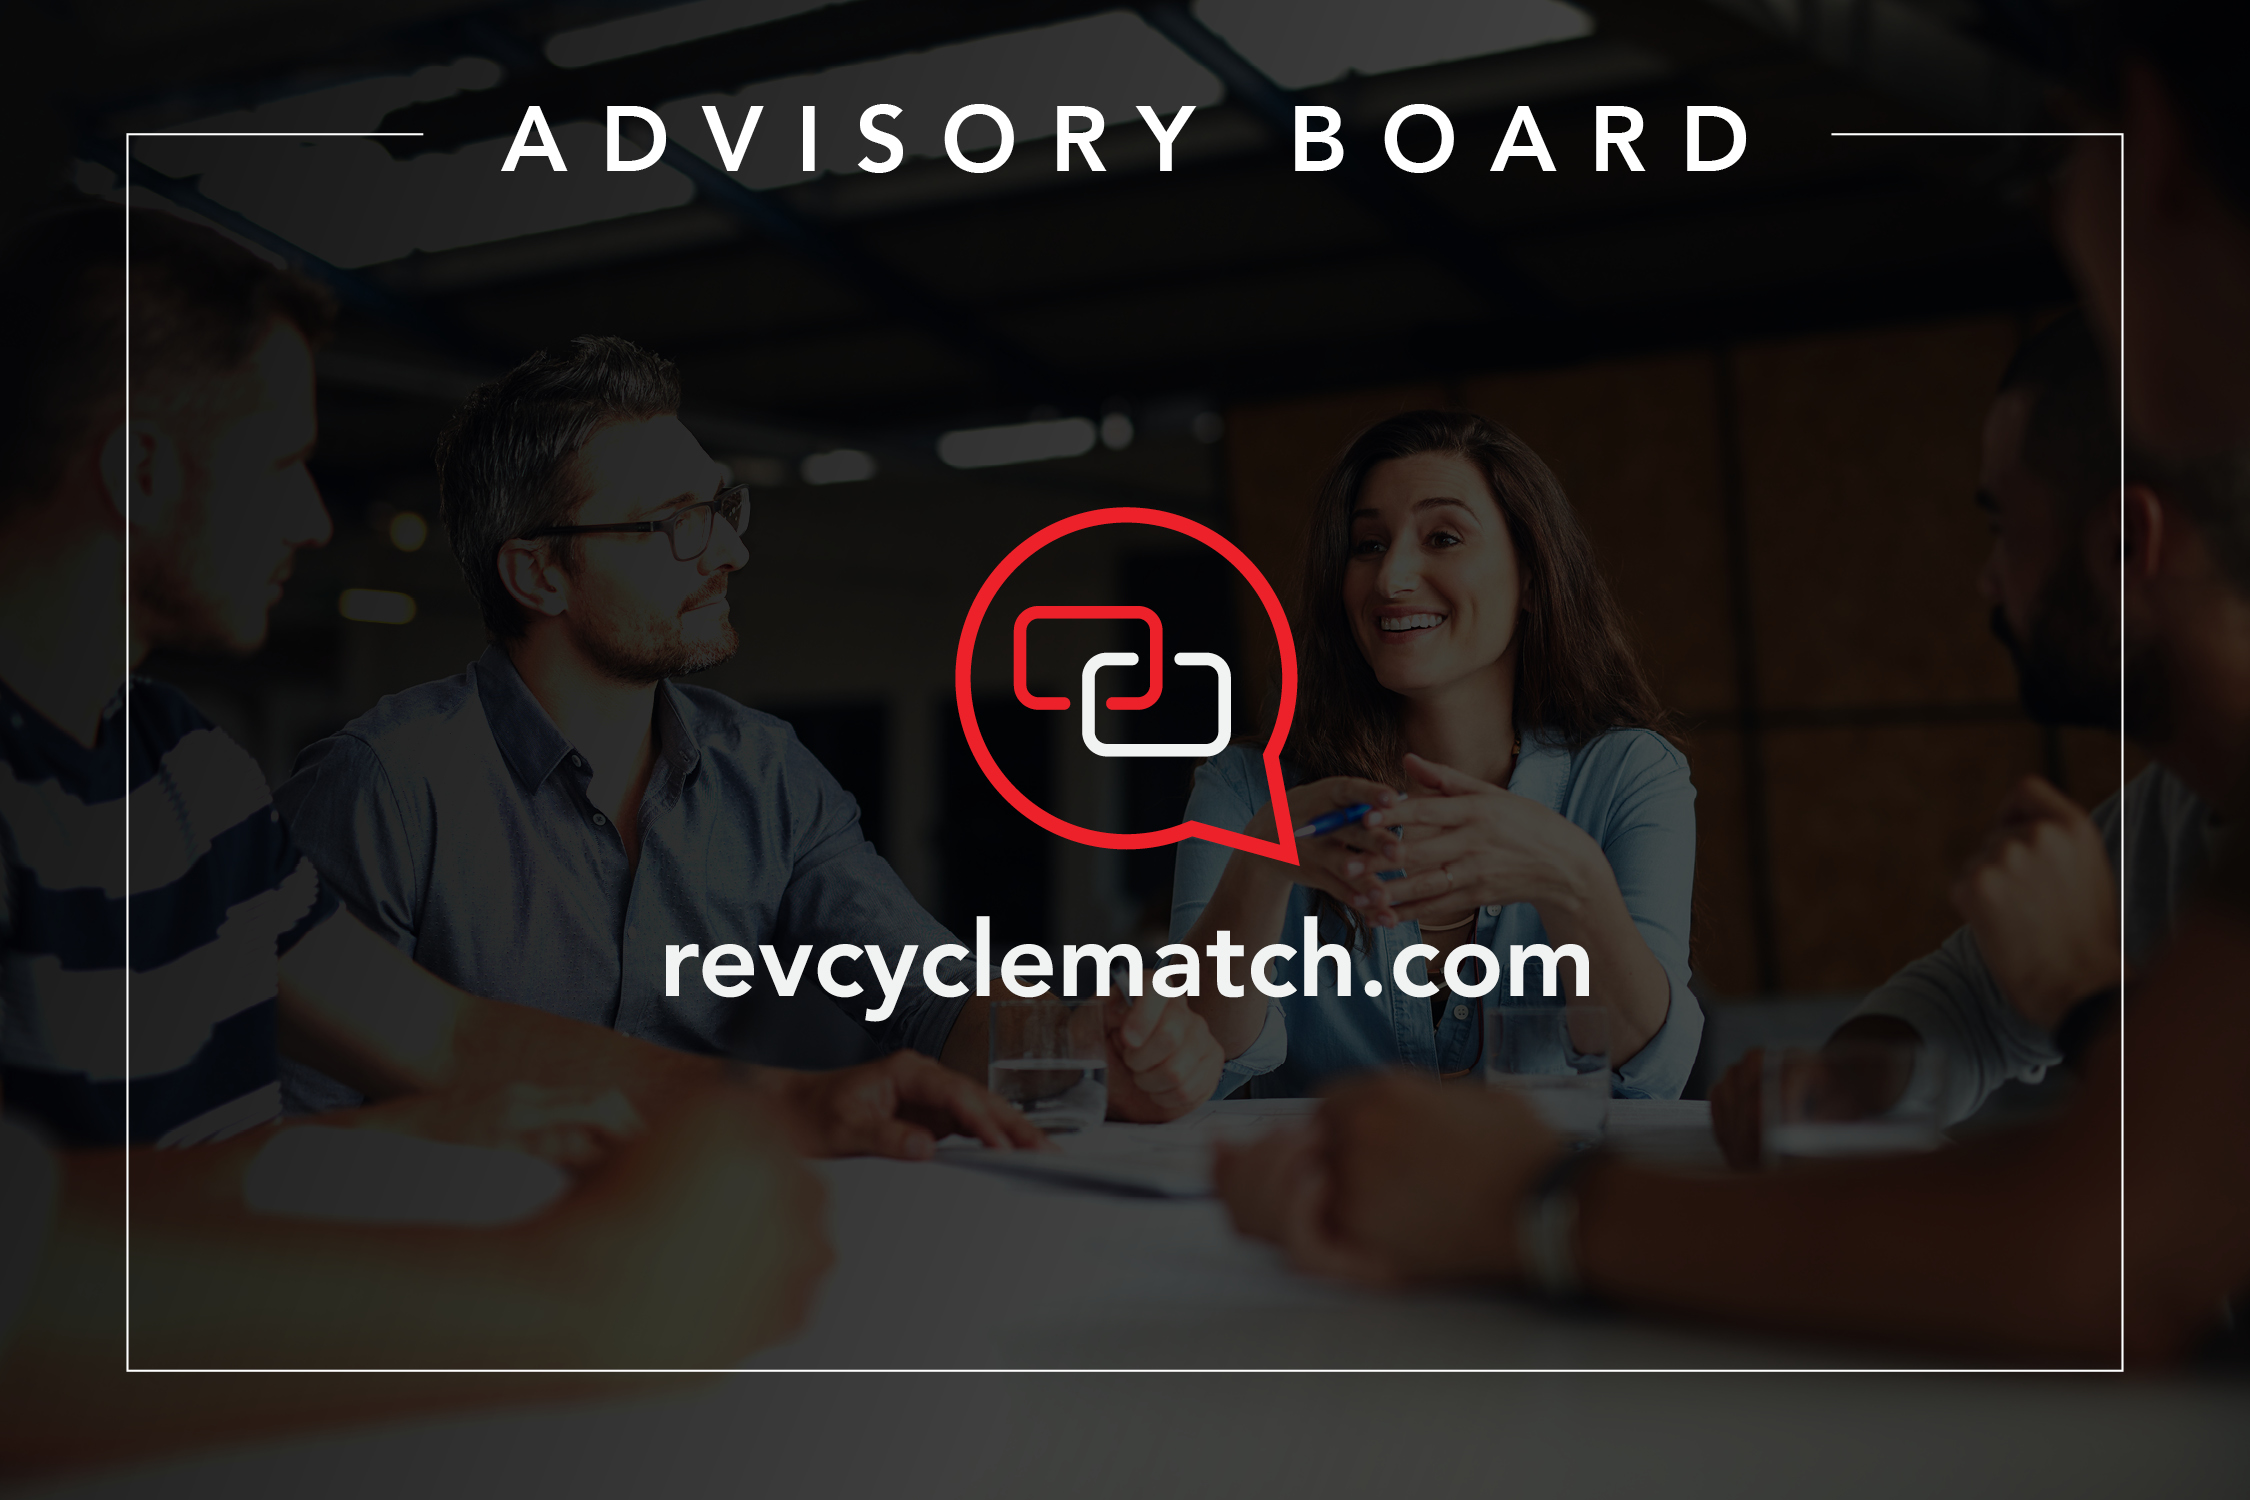 revcyelmatch.com advisory board